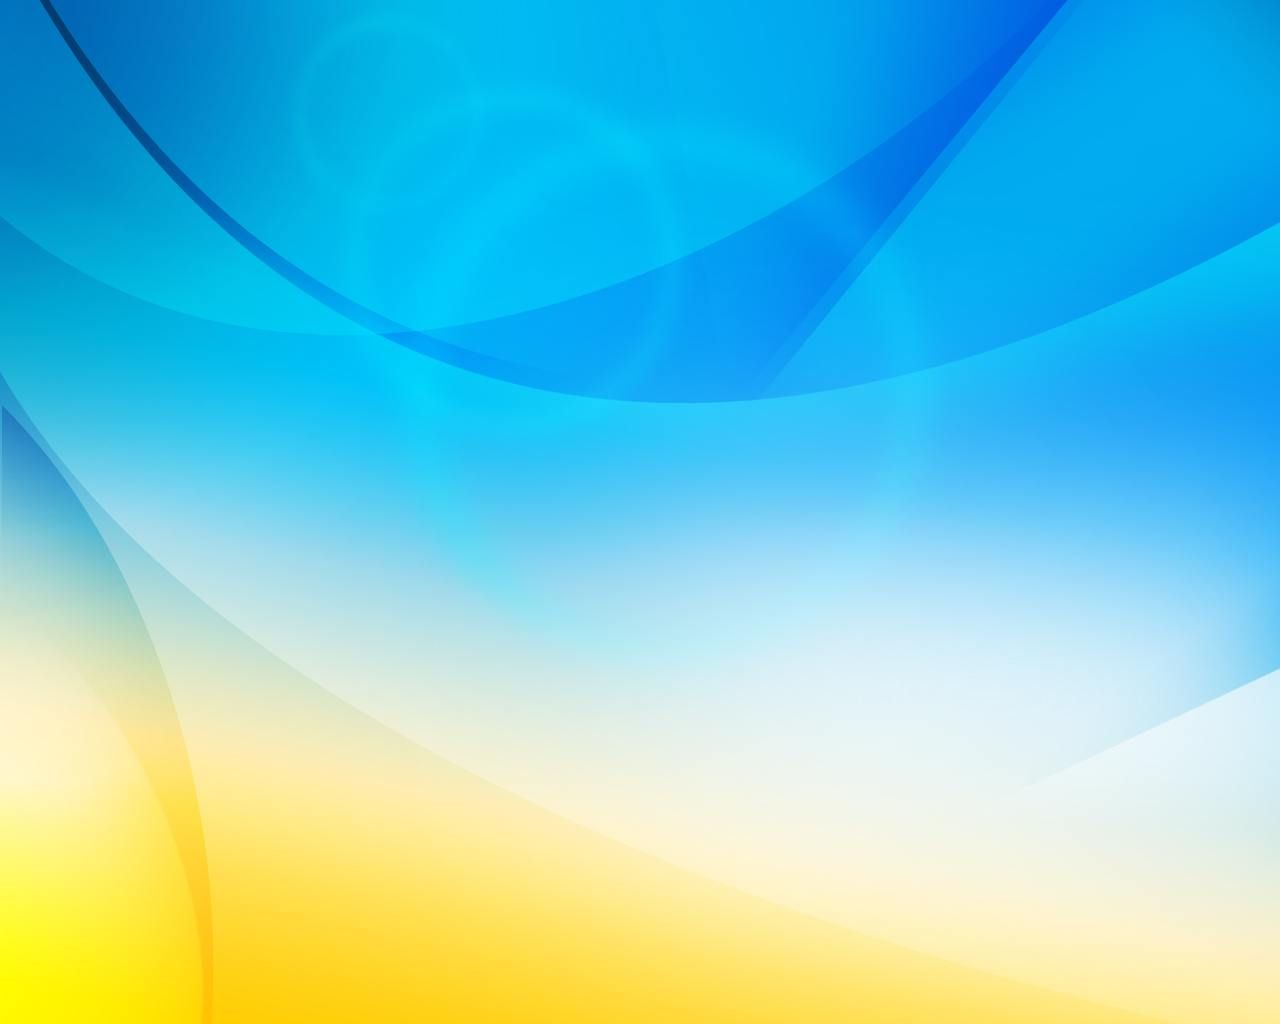 Download Green And Yellow Blue Stripes Wallpaper 1280x1024 Hd